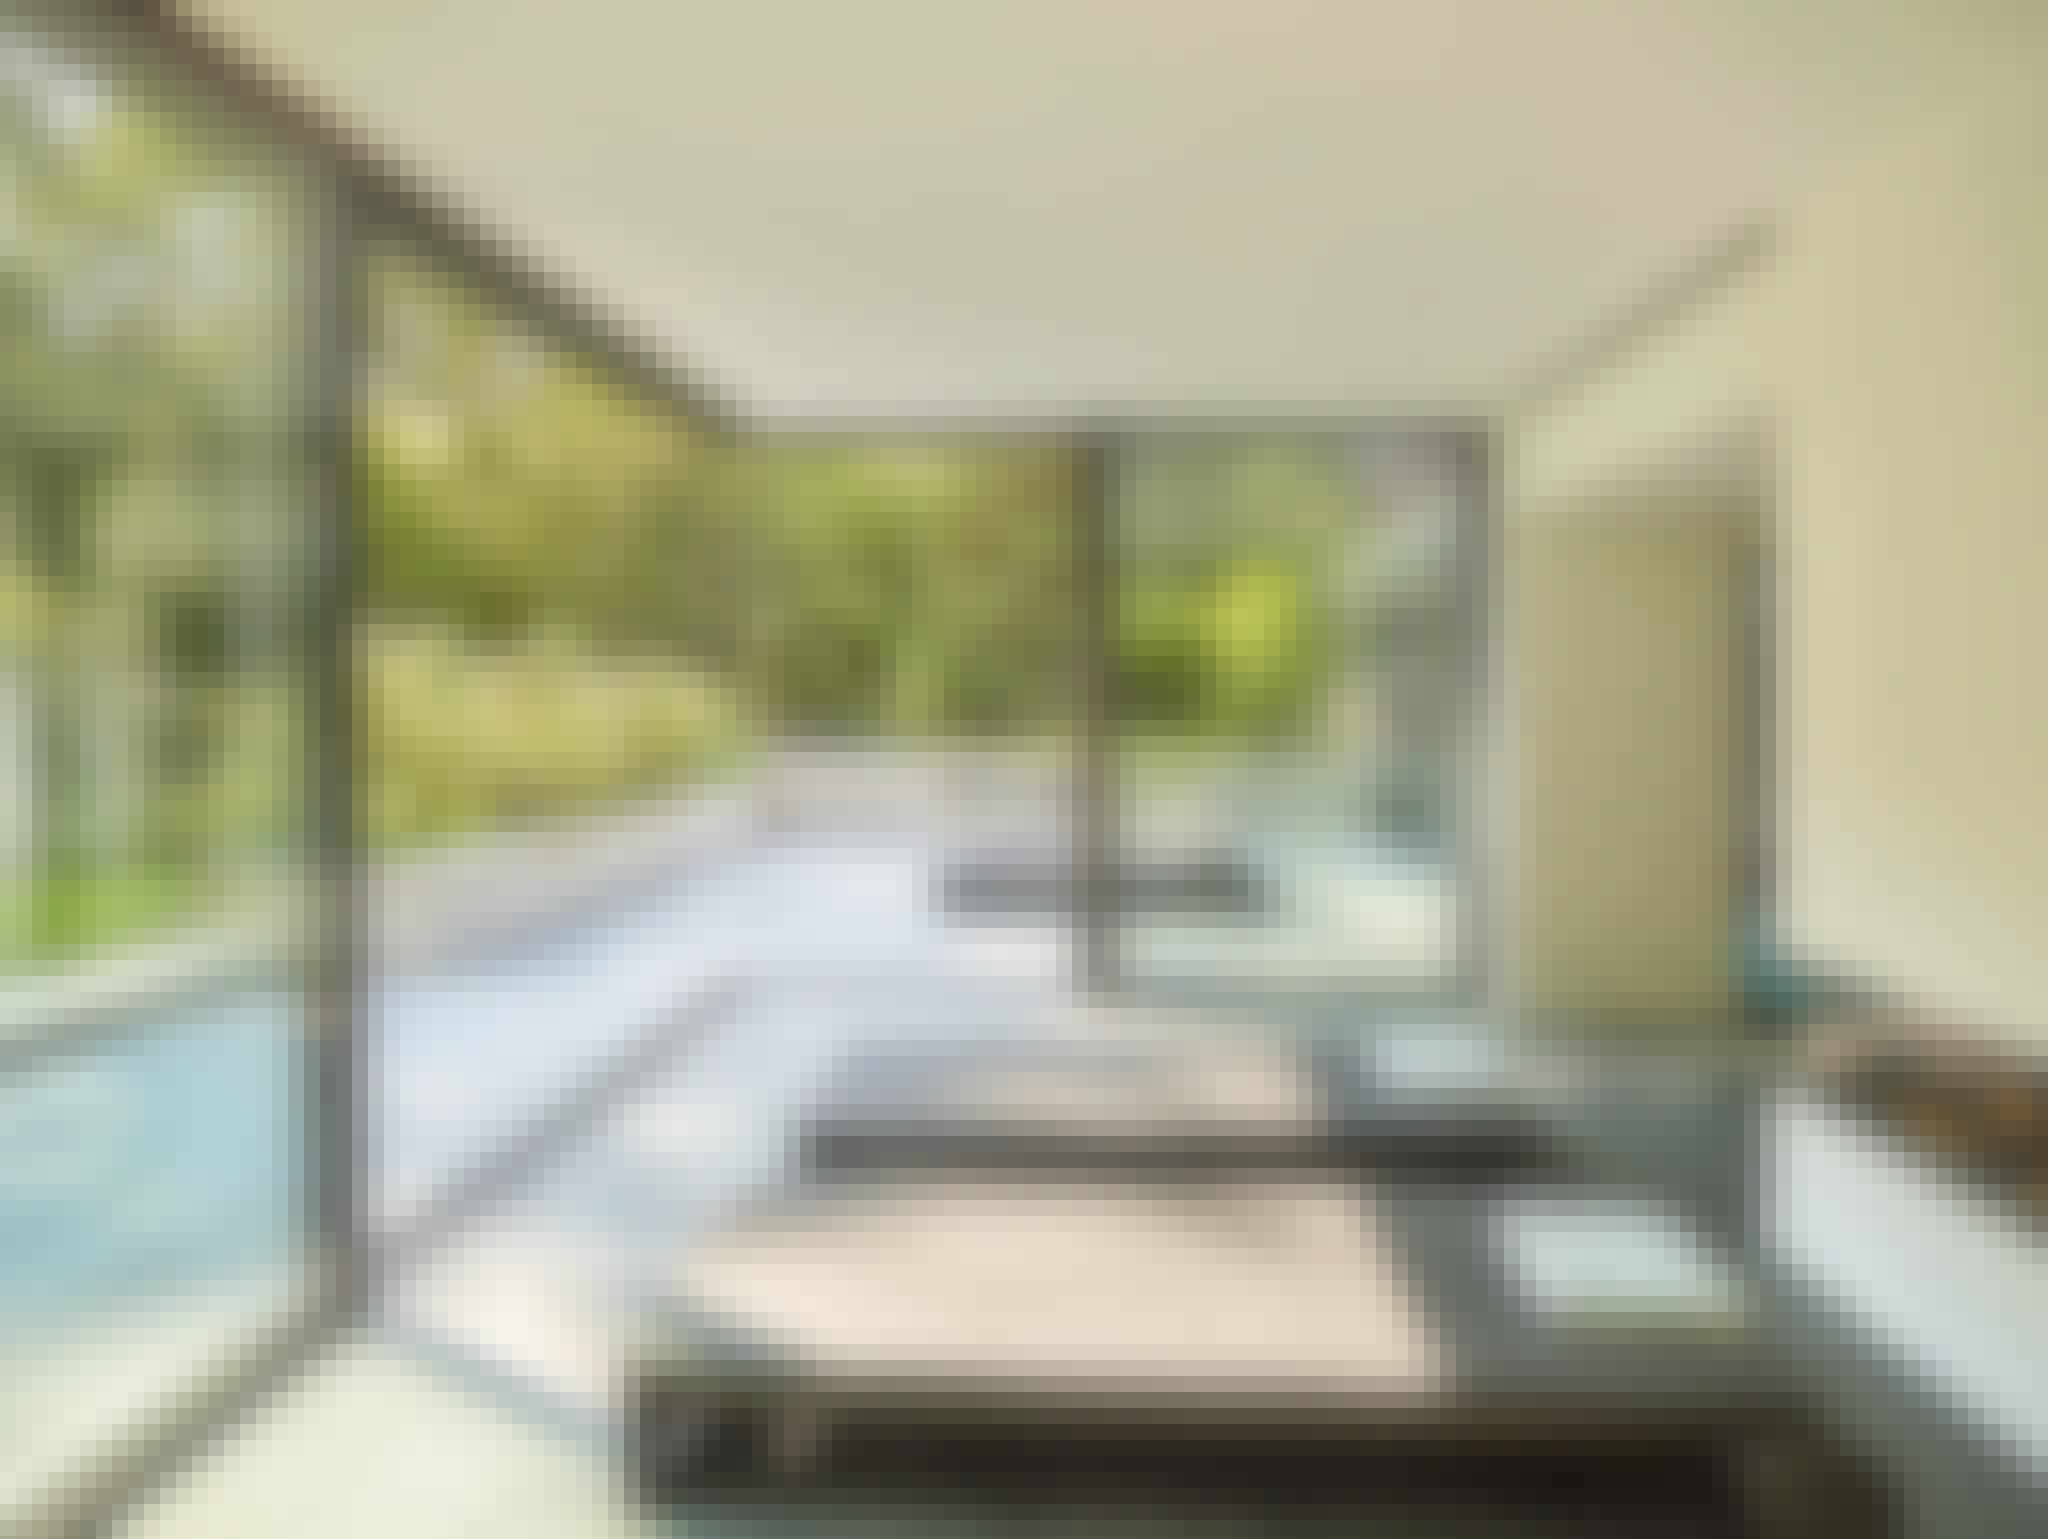 moveable glass doors